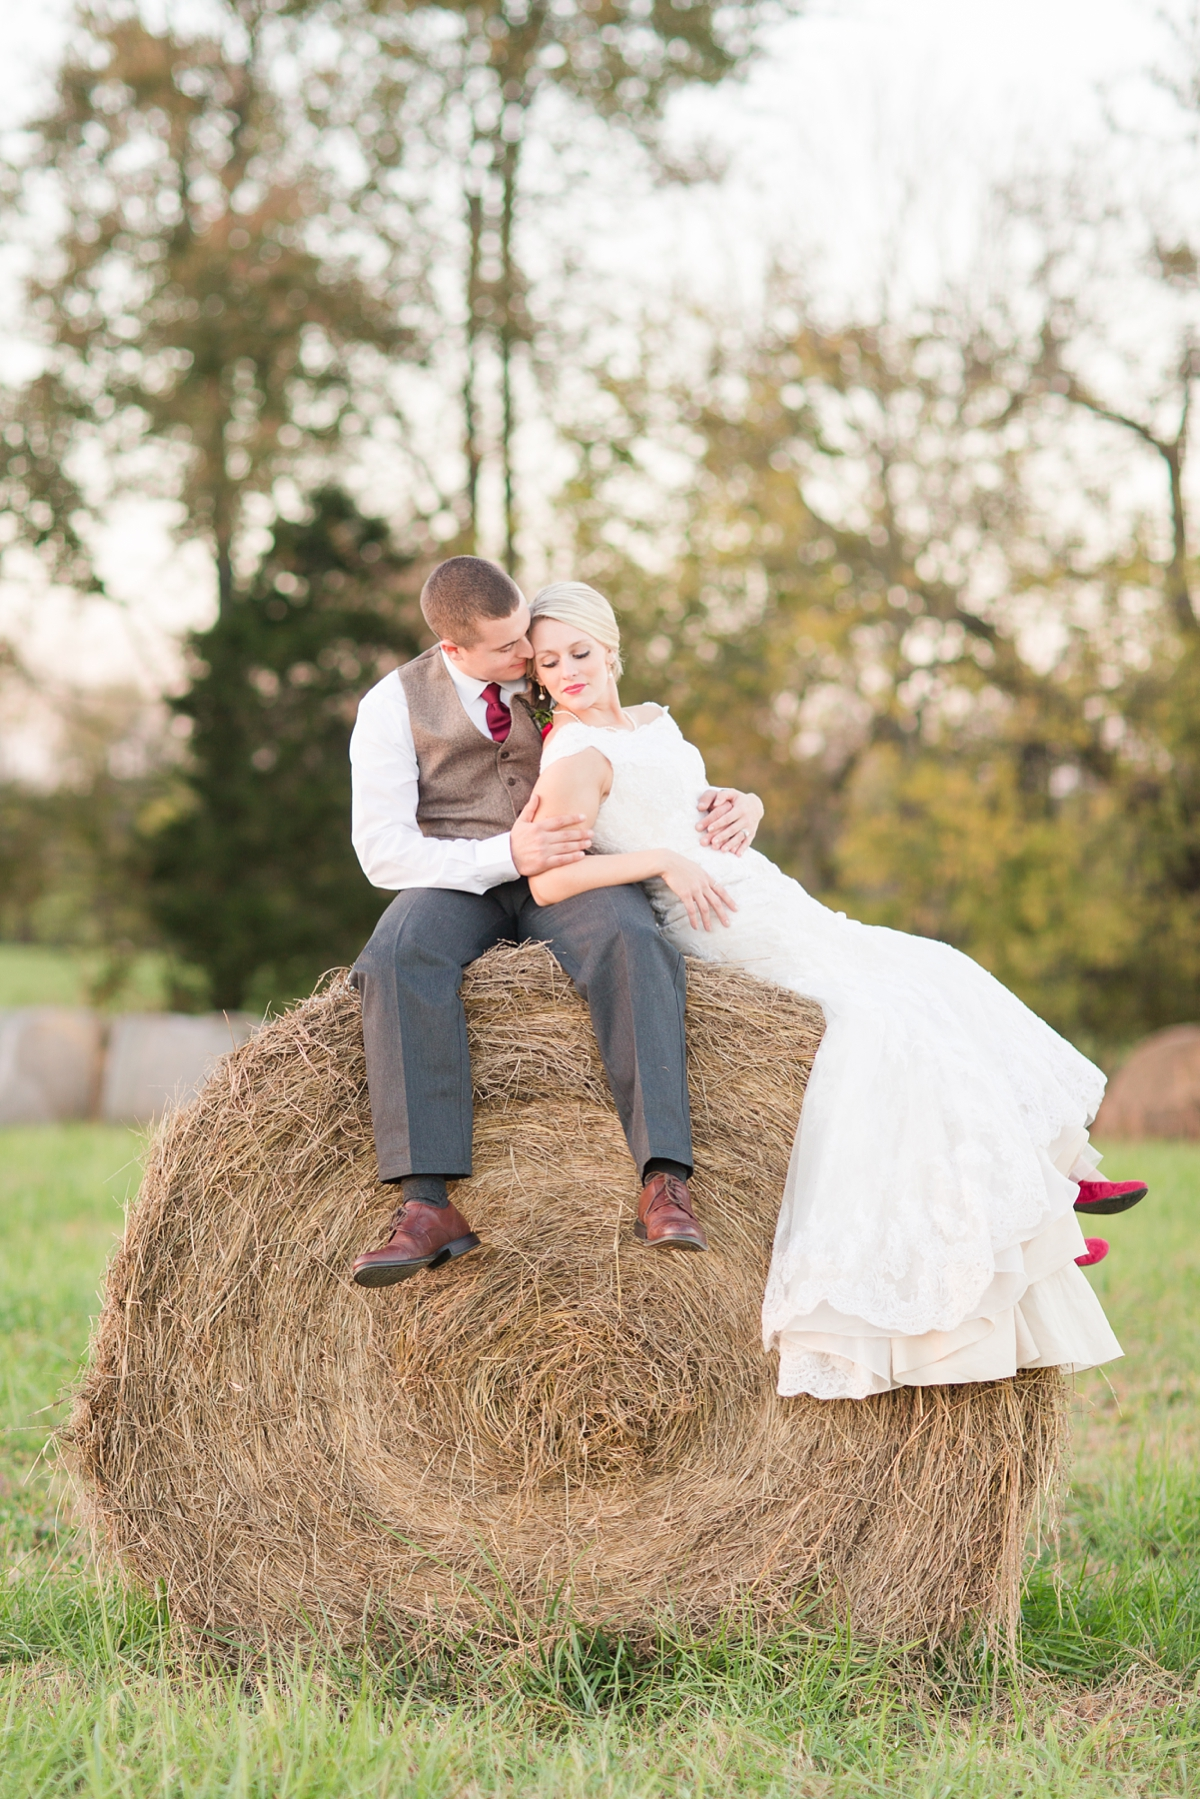 Evening Glow Bride and Groom Hay Bale Portraits. A Rustic Brandy Hill Farm Wedding in Culpeper, Virginia featuring accents of cranberry and gold! Photos by Katelyn James Photography